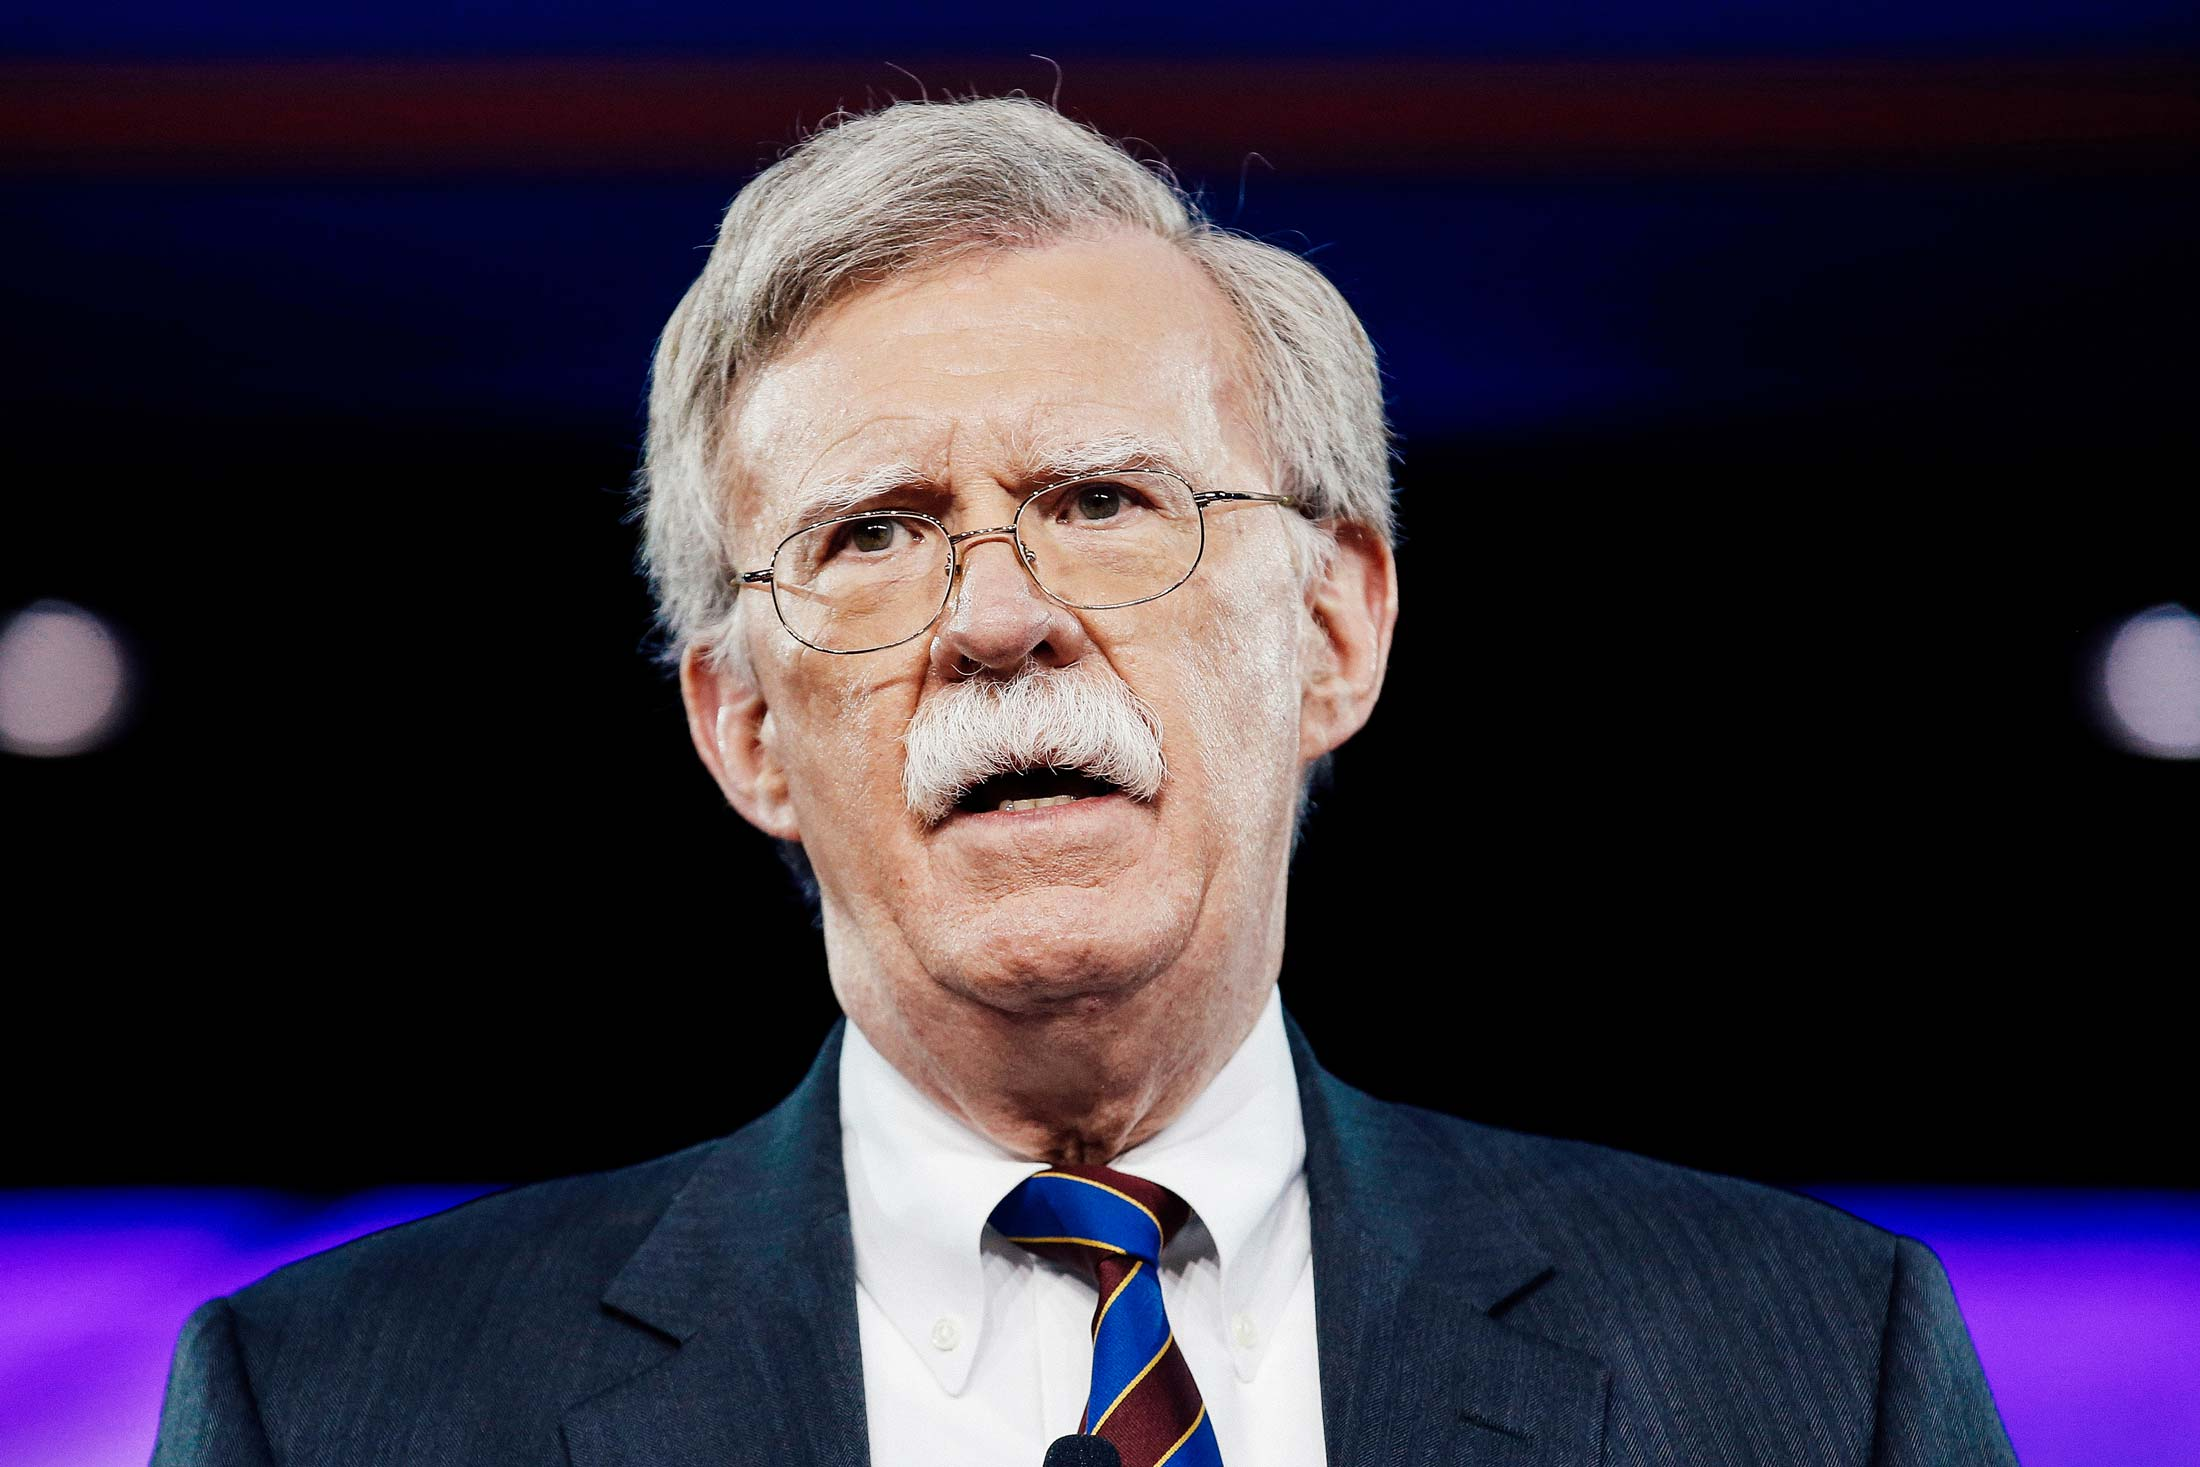 John Bolton speaks at the Conservative Political Action Conference in Oxon Hill, Maryland, on Feb. 24, 2017.